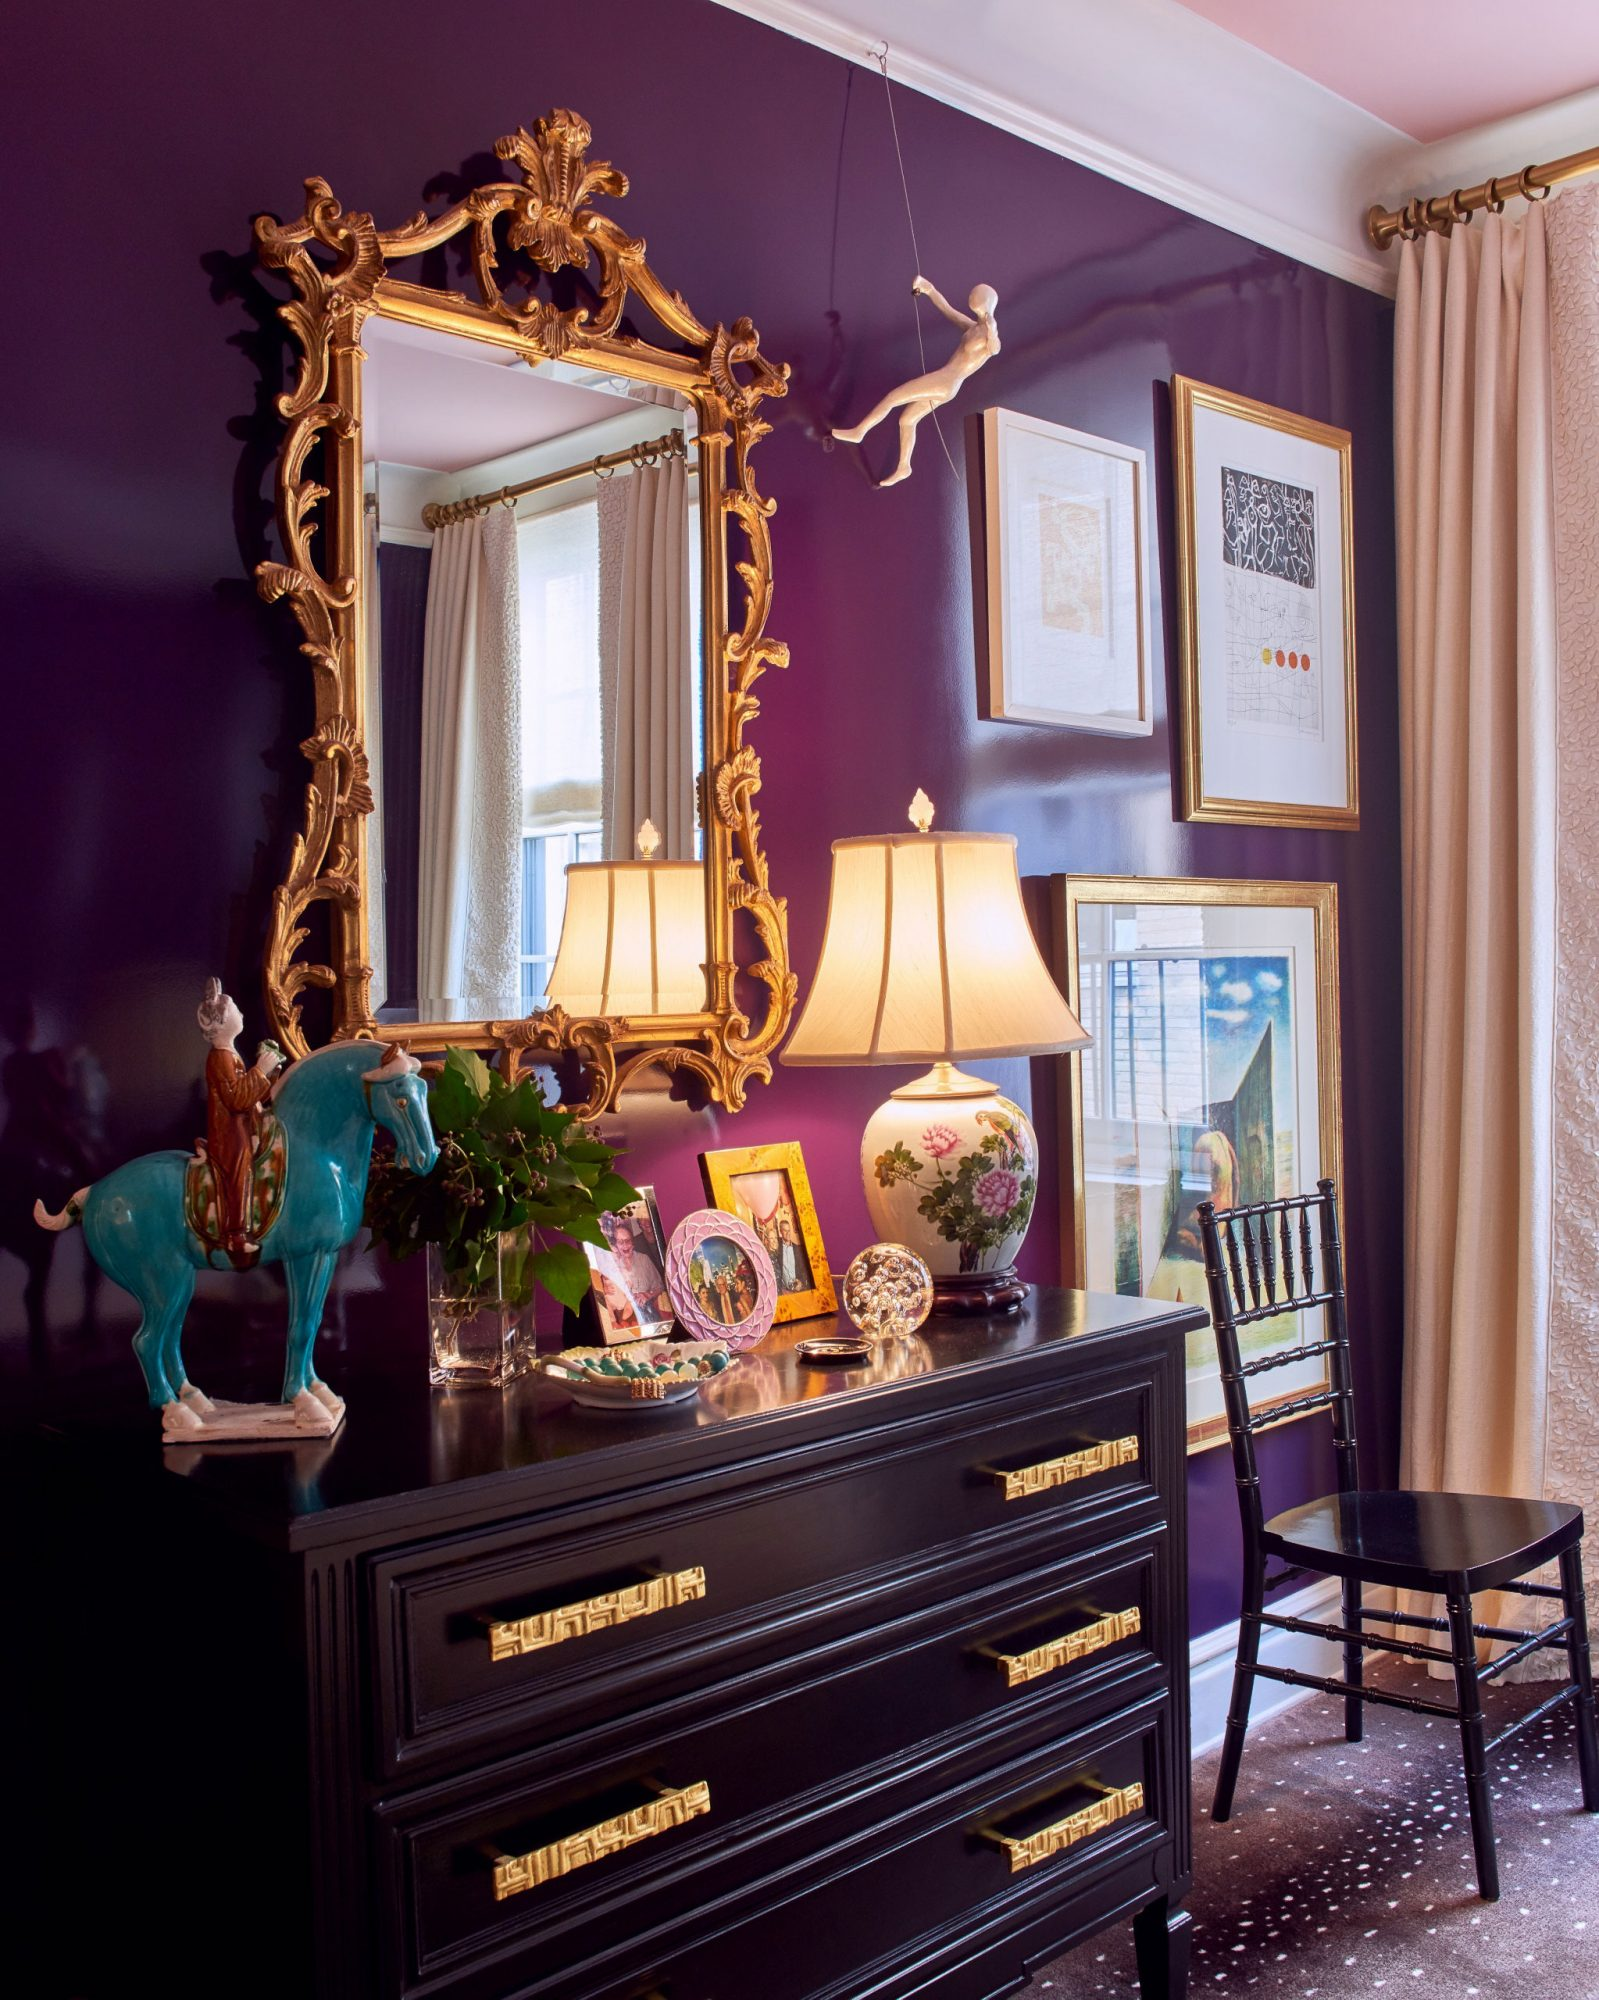 Fine Paints of Europe Carlyle Aubergine in Dining Room